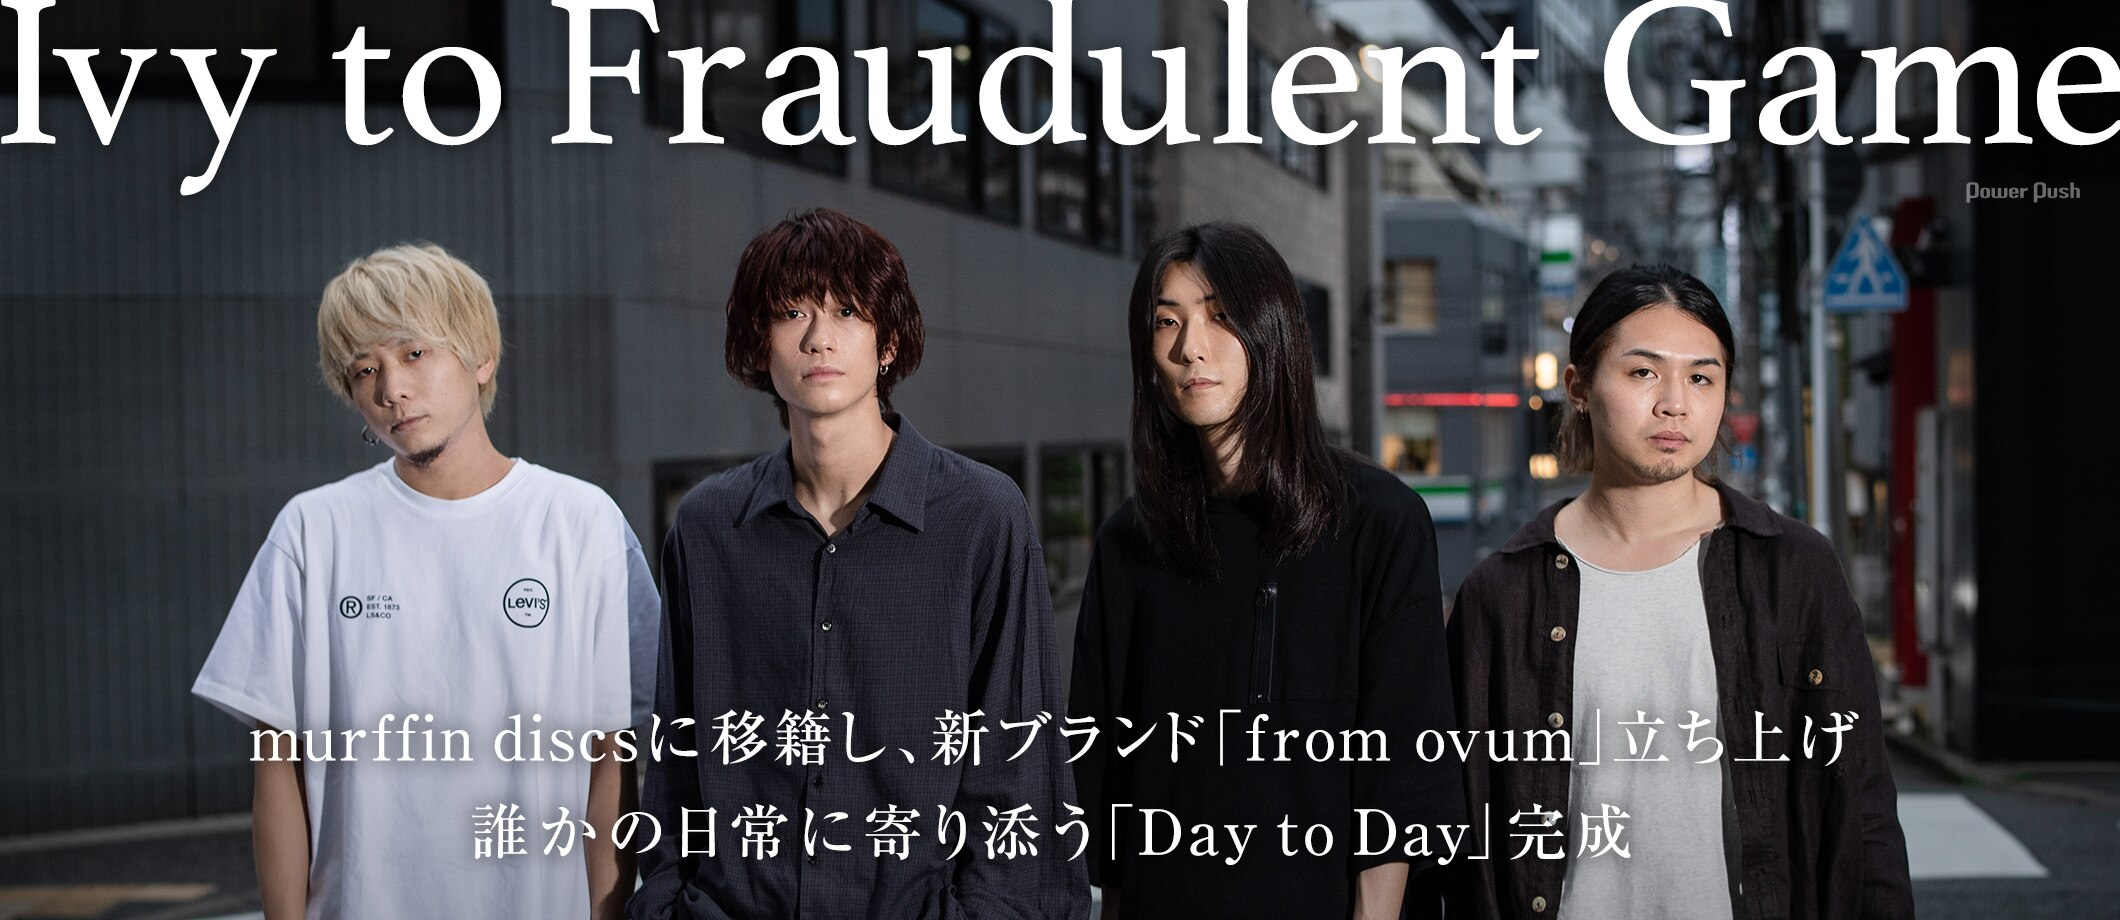 Ivy to Fraudulent Game murffin discsに移籍し、新ブランド「from ovum」立ち上げ 誰かの日常に寄り添う「Day to Day」完成